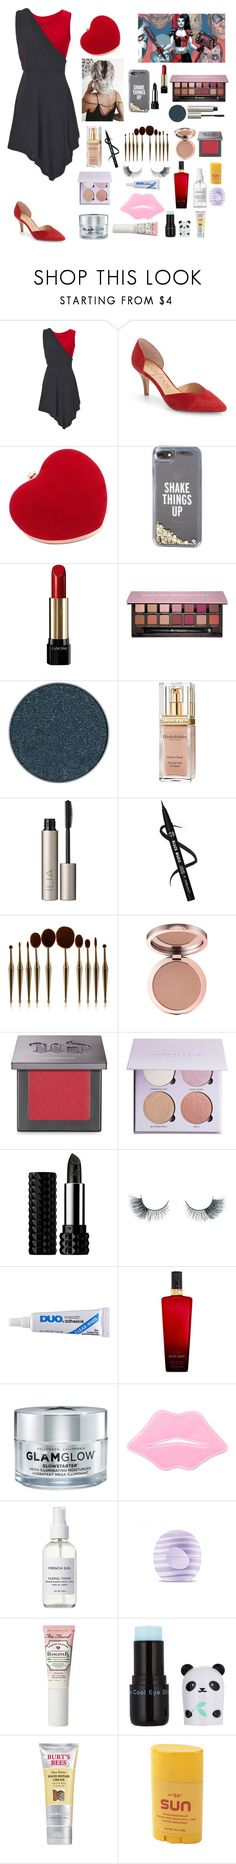 """""""Harley"""" by siberia-ice ❤ liked on Polyvore featuring jon & anna, Sole Society, Kate Spade, Lancôme, Anastasia Beverly Hills, Elizabeth Arden, Ilia, Urban Decay, Kat Von D and Unicorn Lashes"""